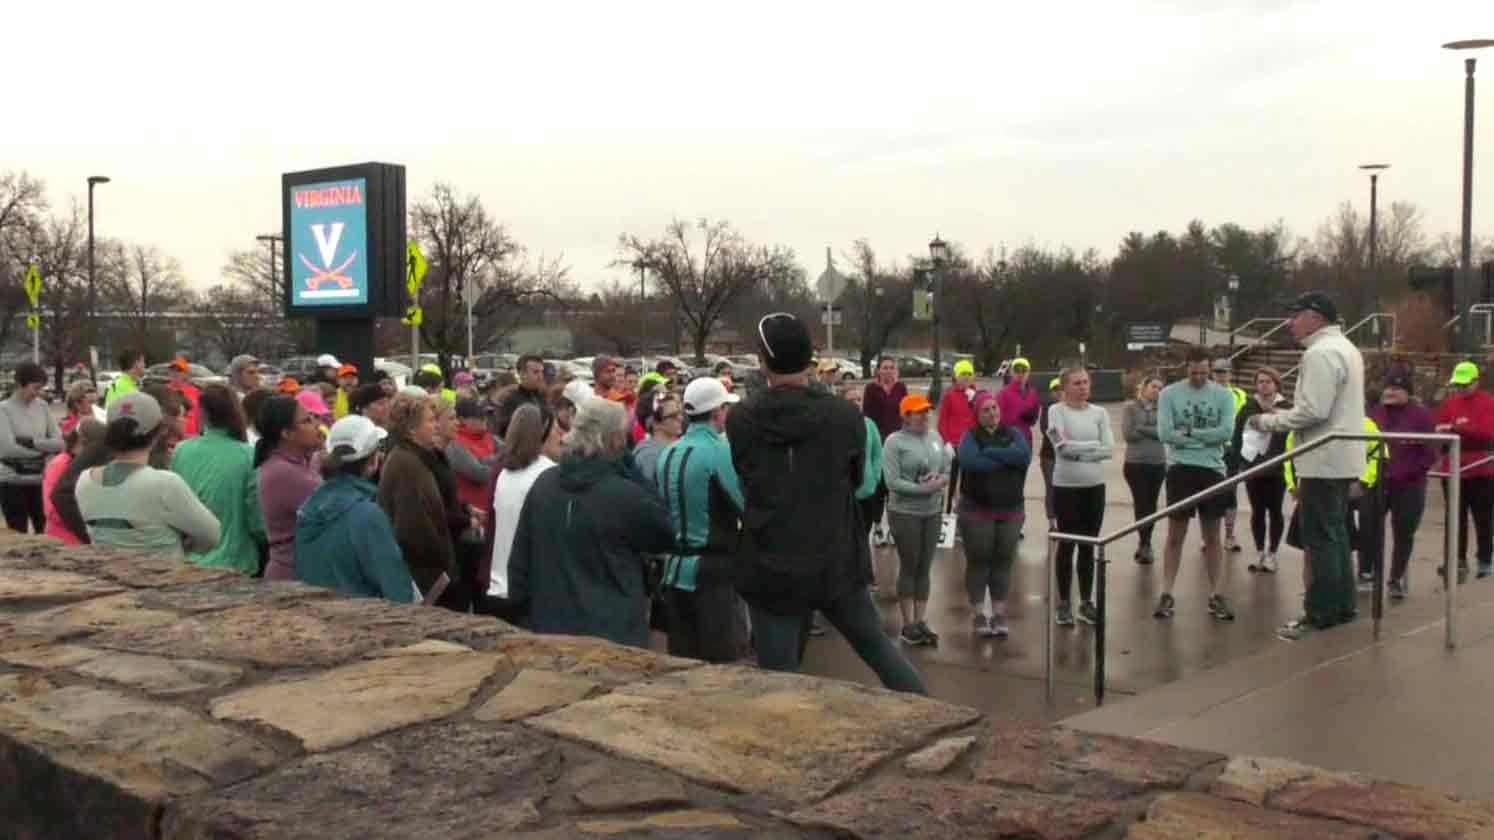 Runners getting instructions in regards to the days training.